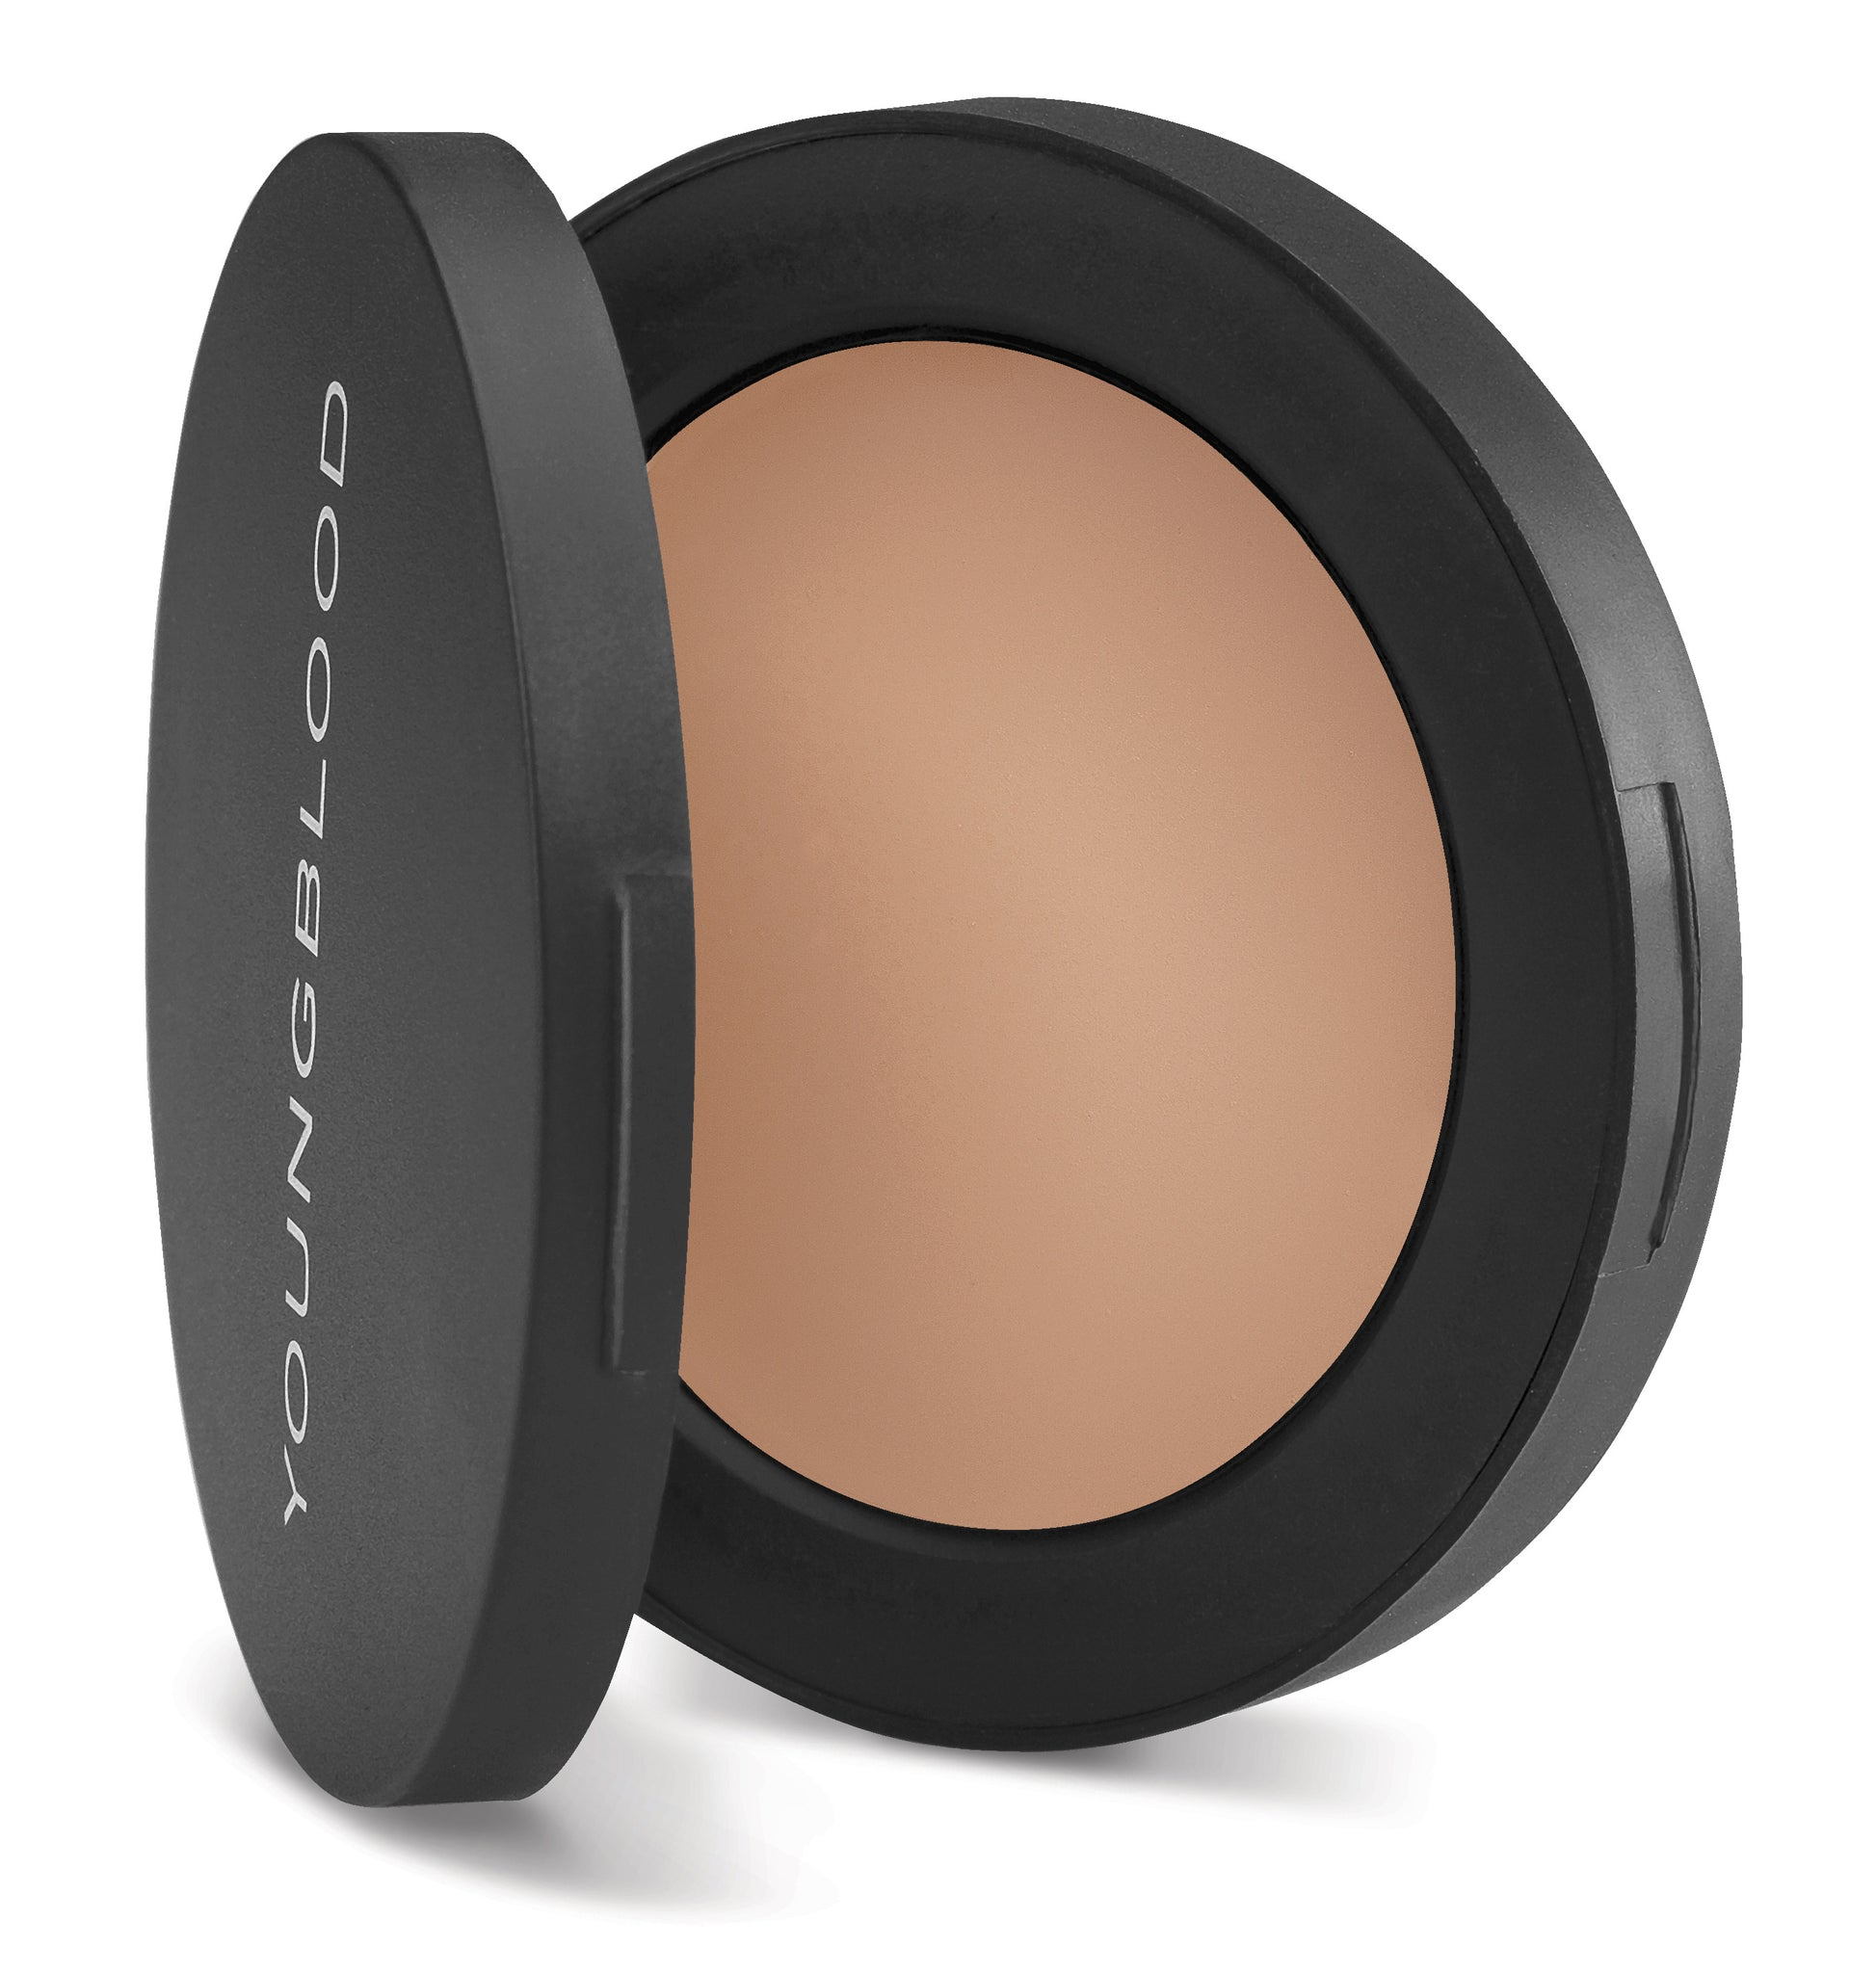 ULTIMATE CONCEALER - Medium